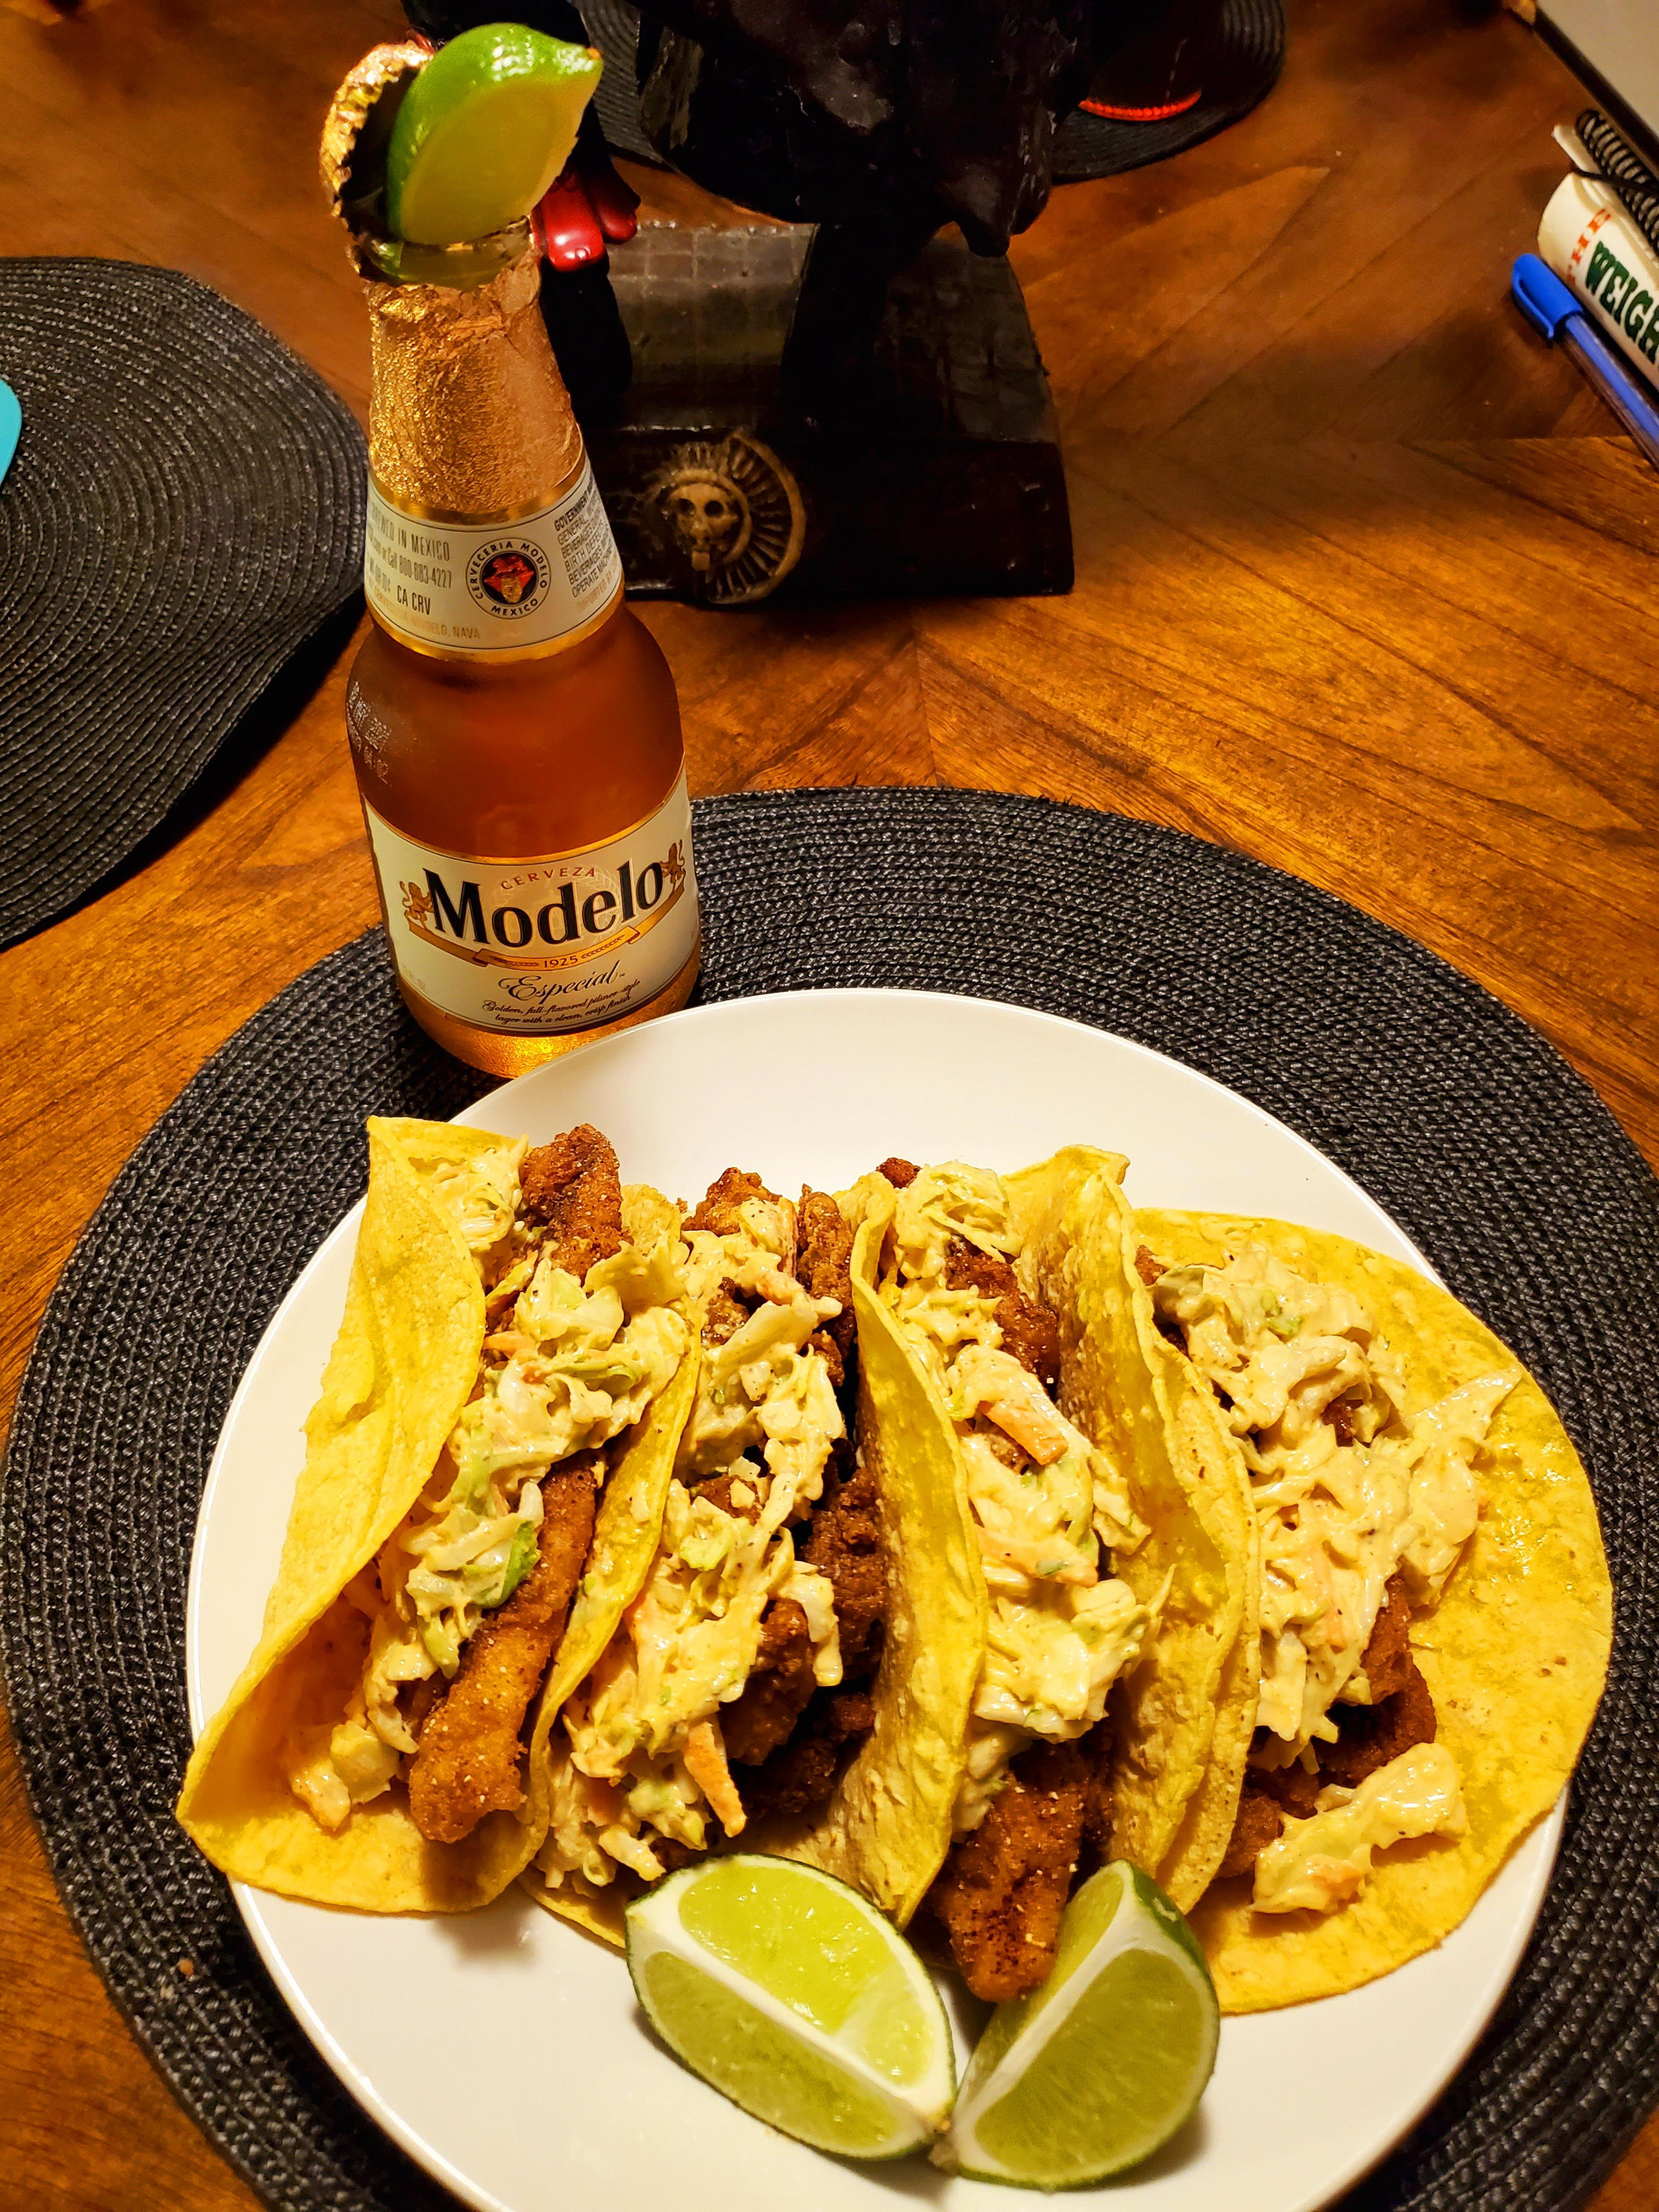 My wife said call me 5 minutes before I get home. Ok? I walk in and and this is prepped on the table waiting for me. Homemade fish and shrimp tacos 🤤